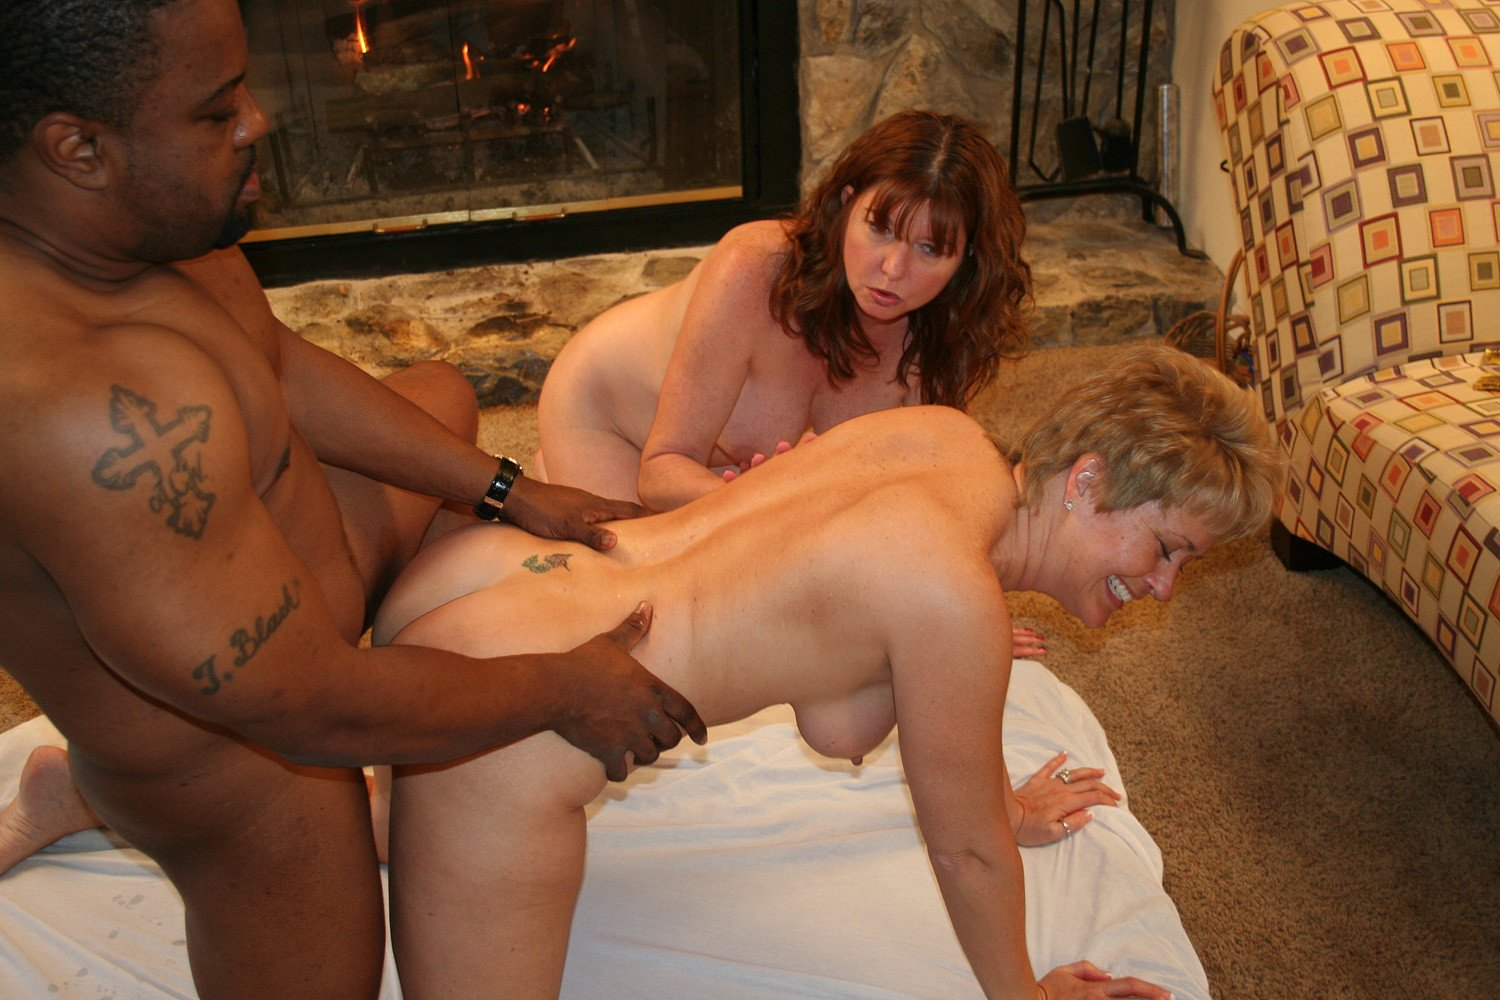 My wife and i are swingers